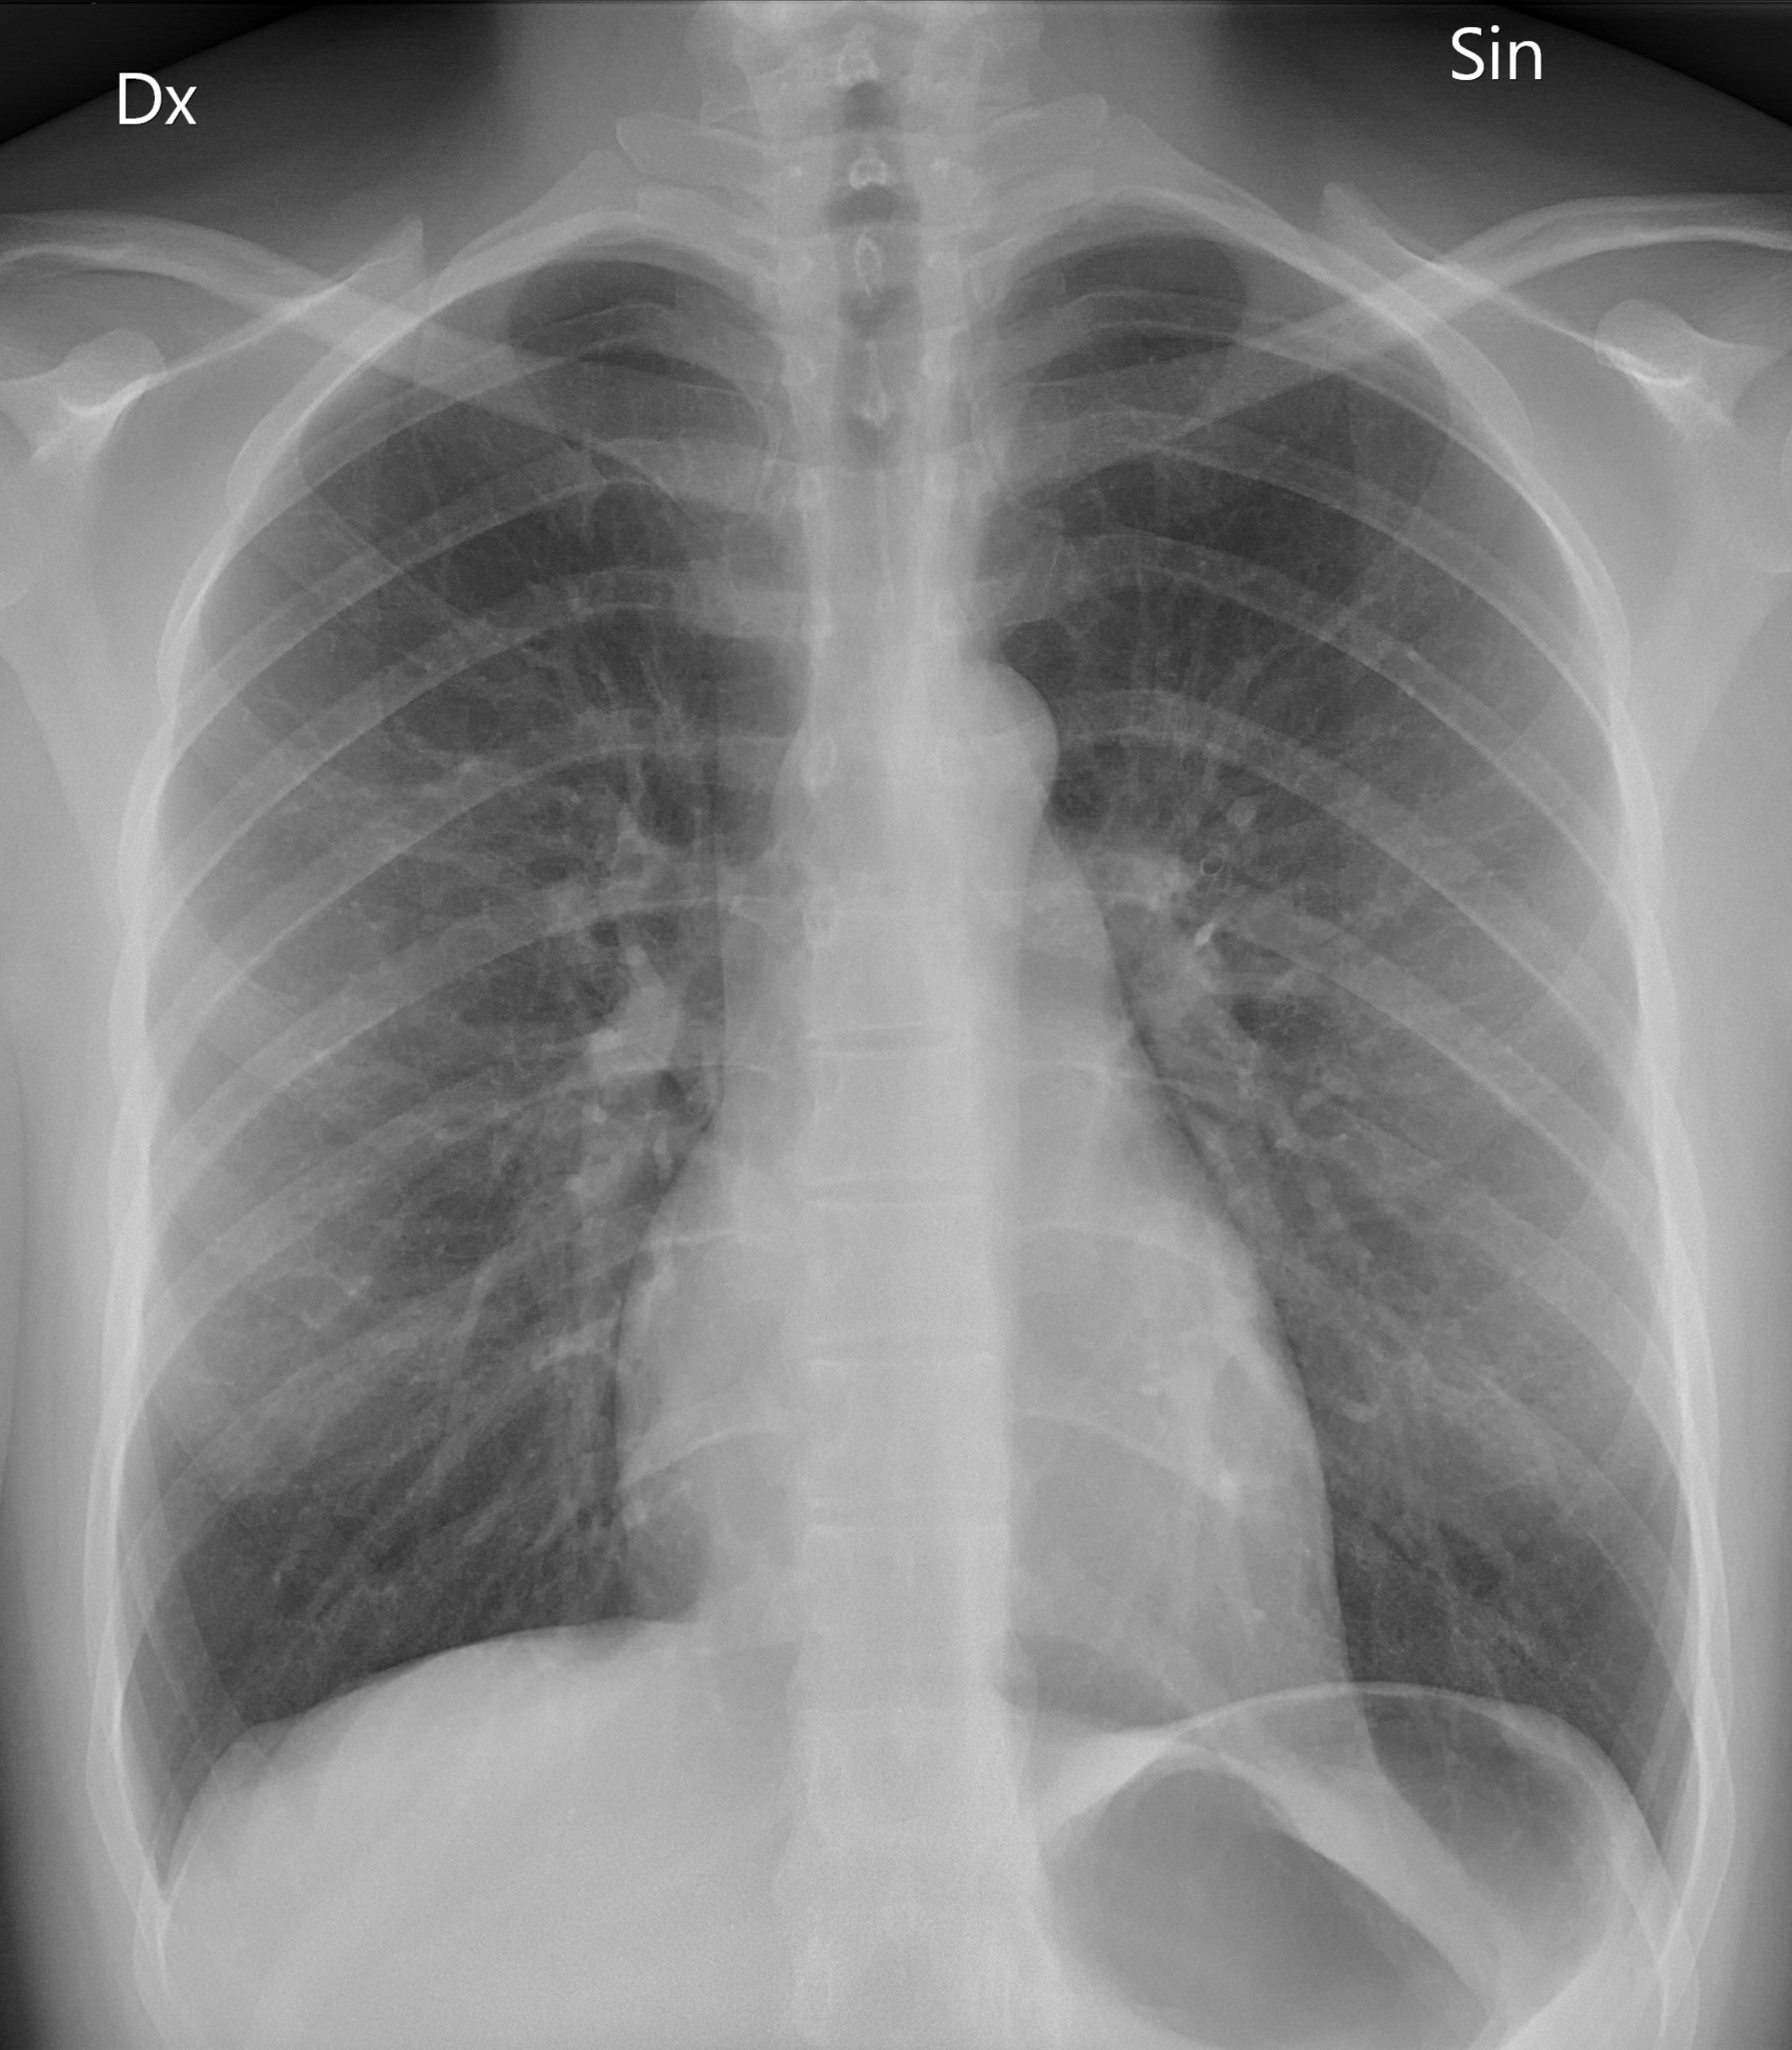 Normal Chest Xray 2 Buyxraysonline